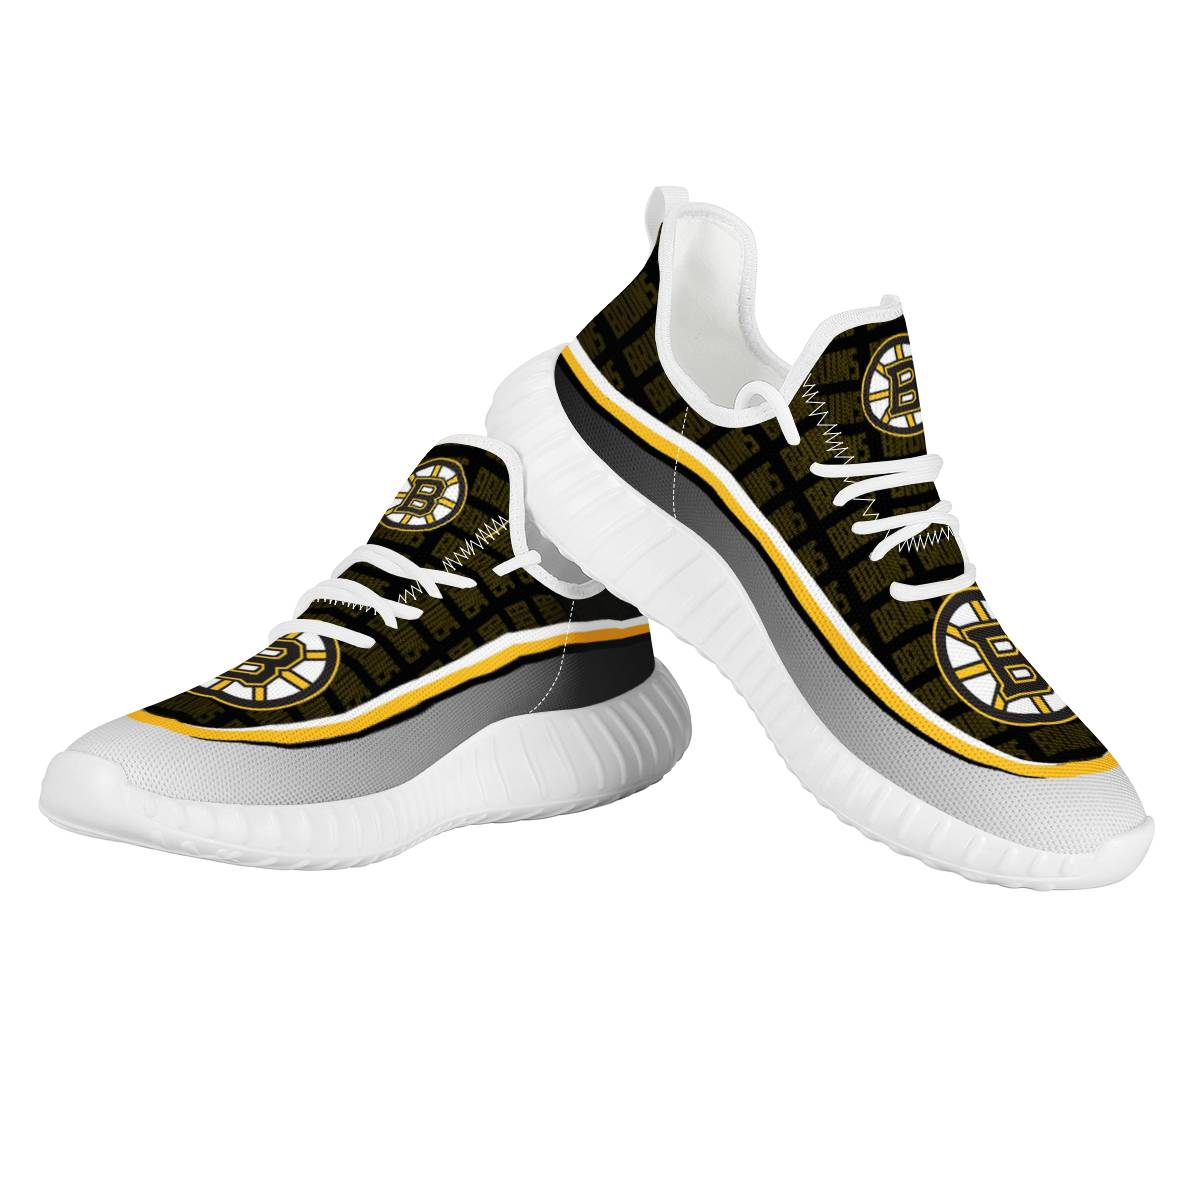 Women's NHL Boston Bruins Lightweight Running Shoes 003